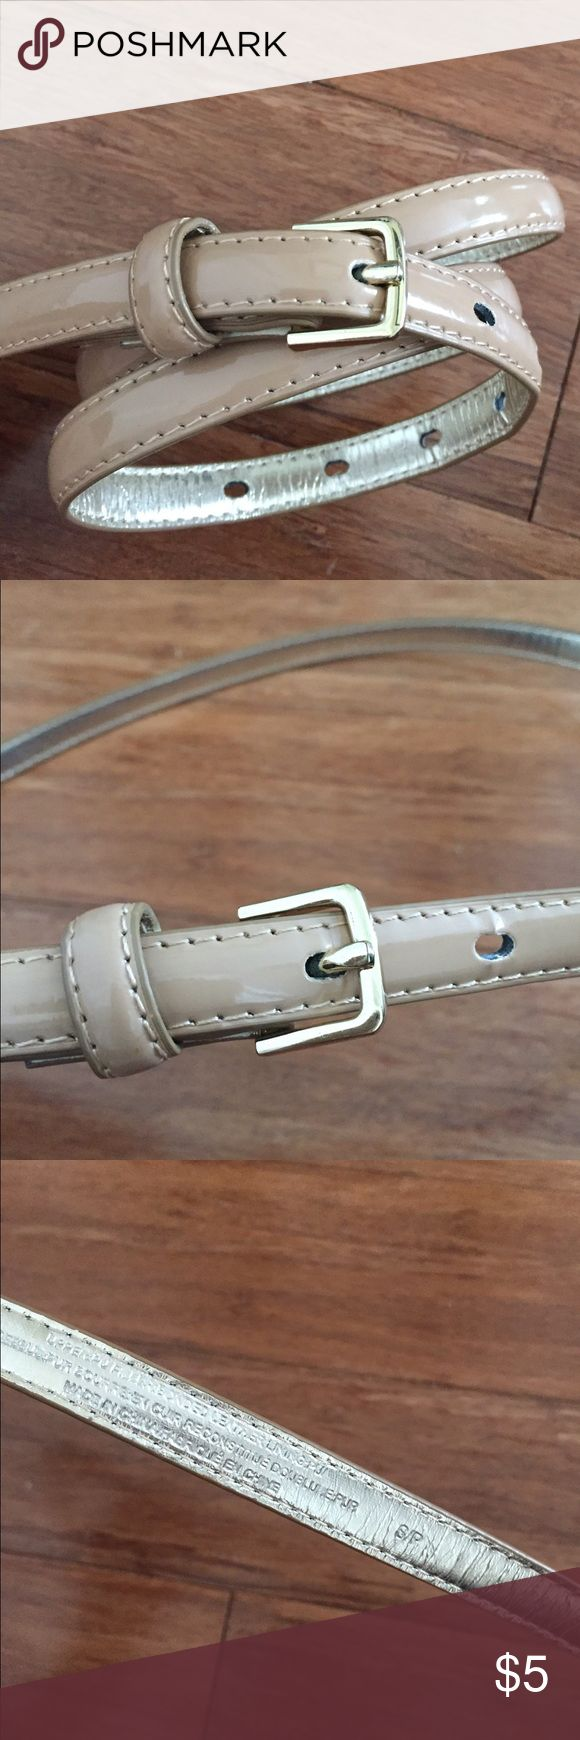 Nude Patent Leather Skinny Belt Never worn. Perfect for nearly any outfit. J. Crew Accessories Belts